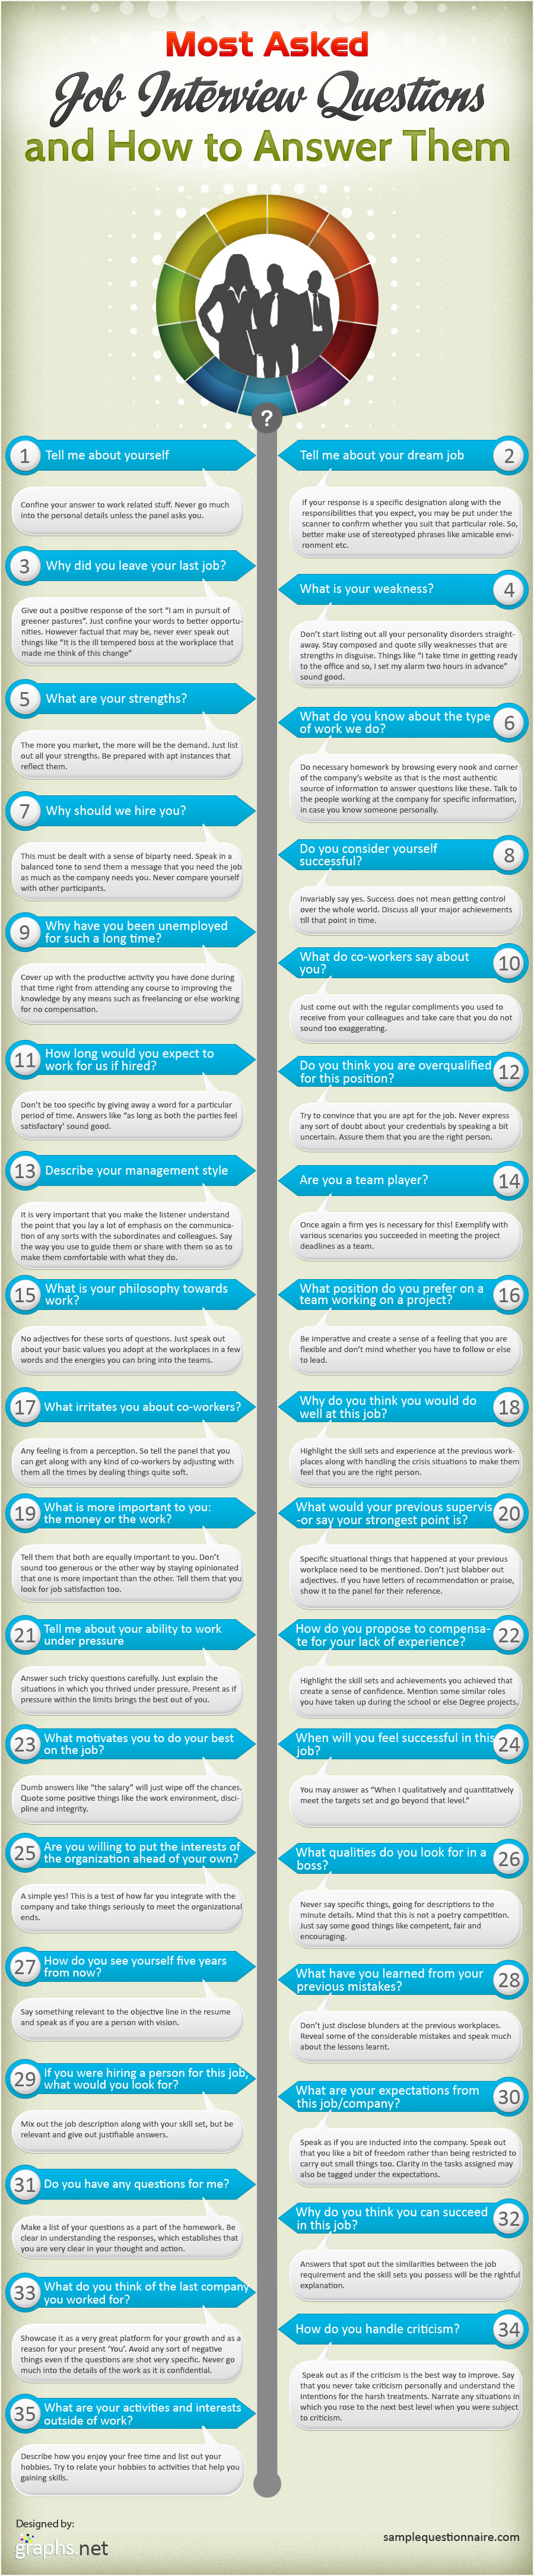 what are the most asked job interview questions infographic most asked interview questions